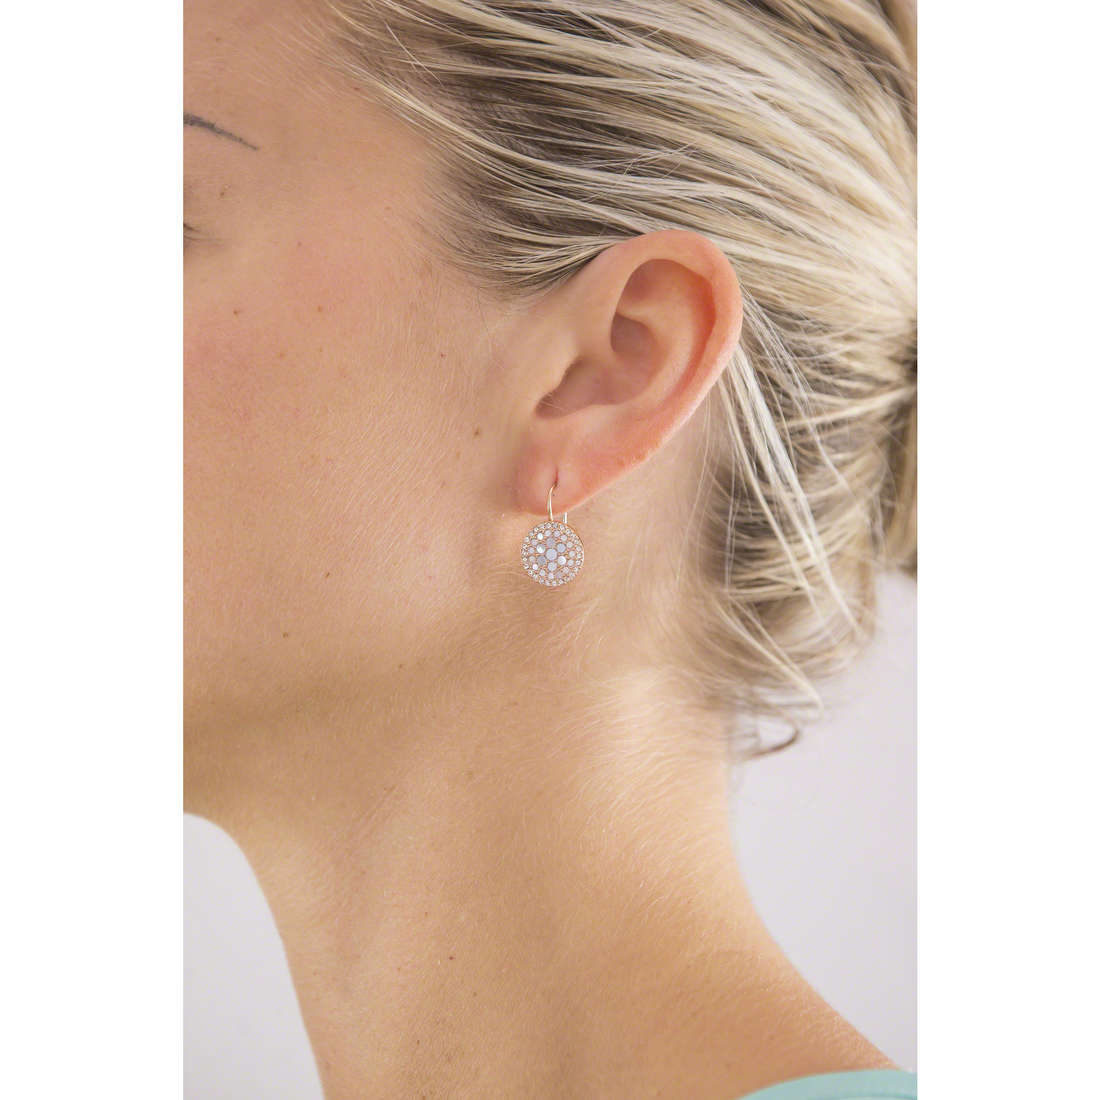 Fossil boucles d'oreille Spring 15 femme JF01737791 indosso